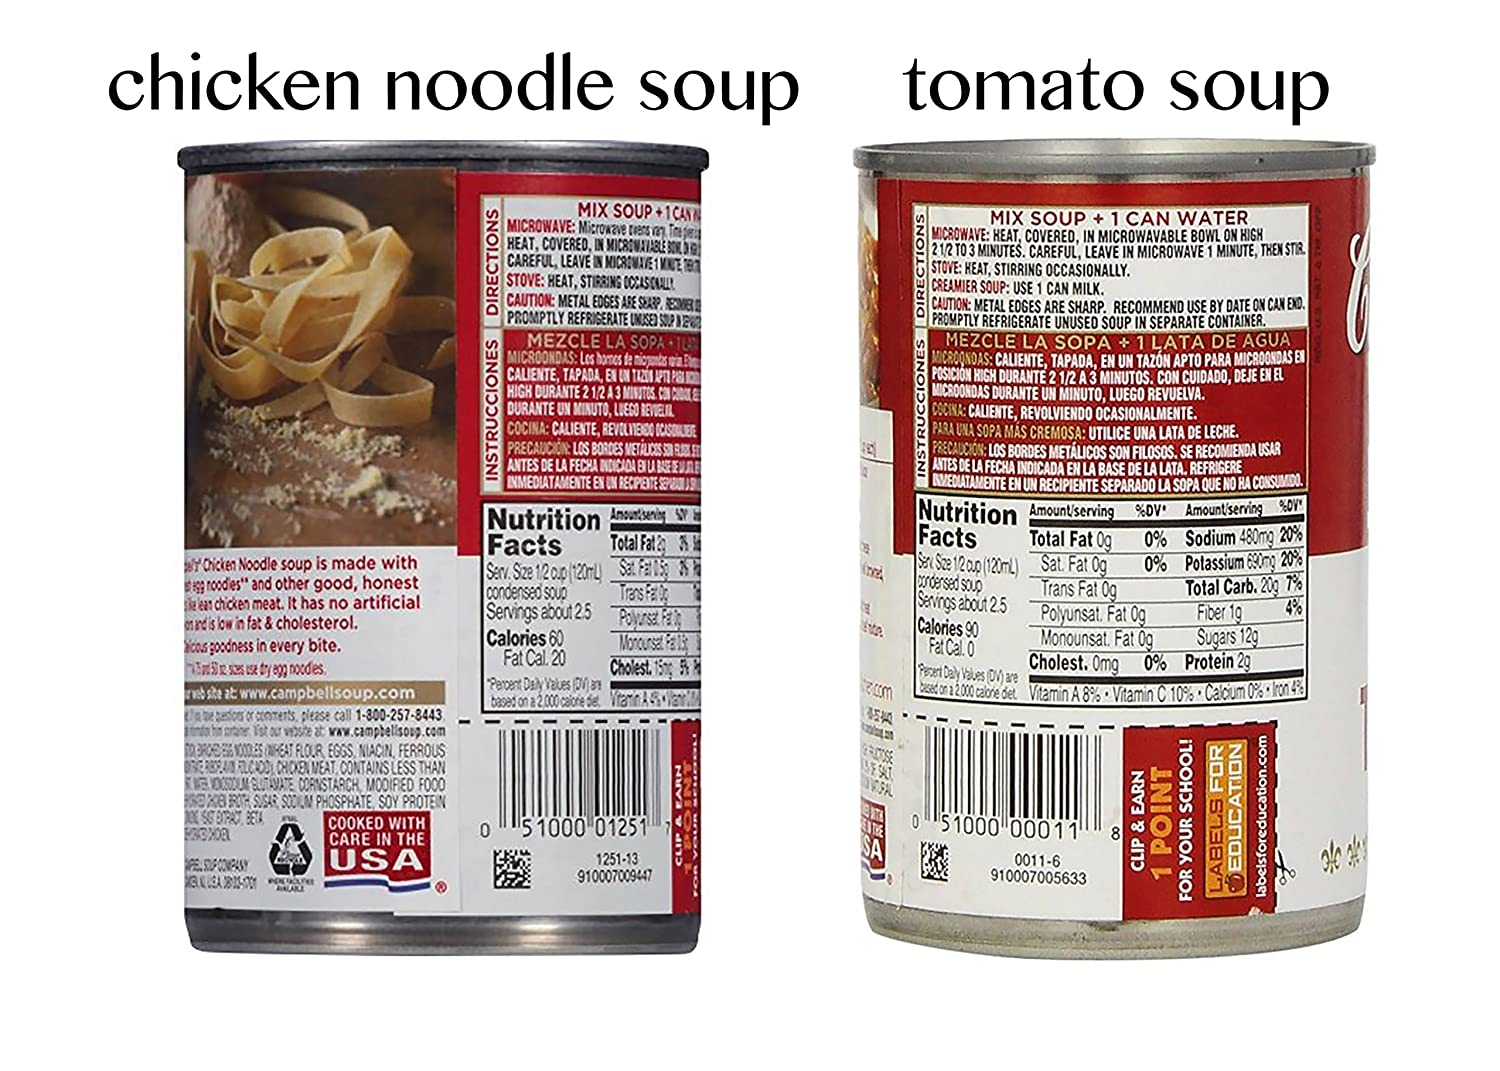 Amazon.com : Campbells Chicken Noodle Soup x 2 Cans, and ...